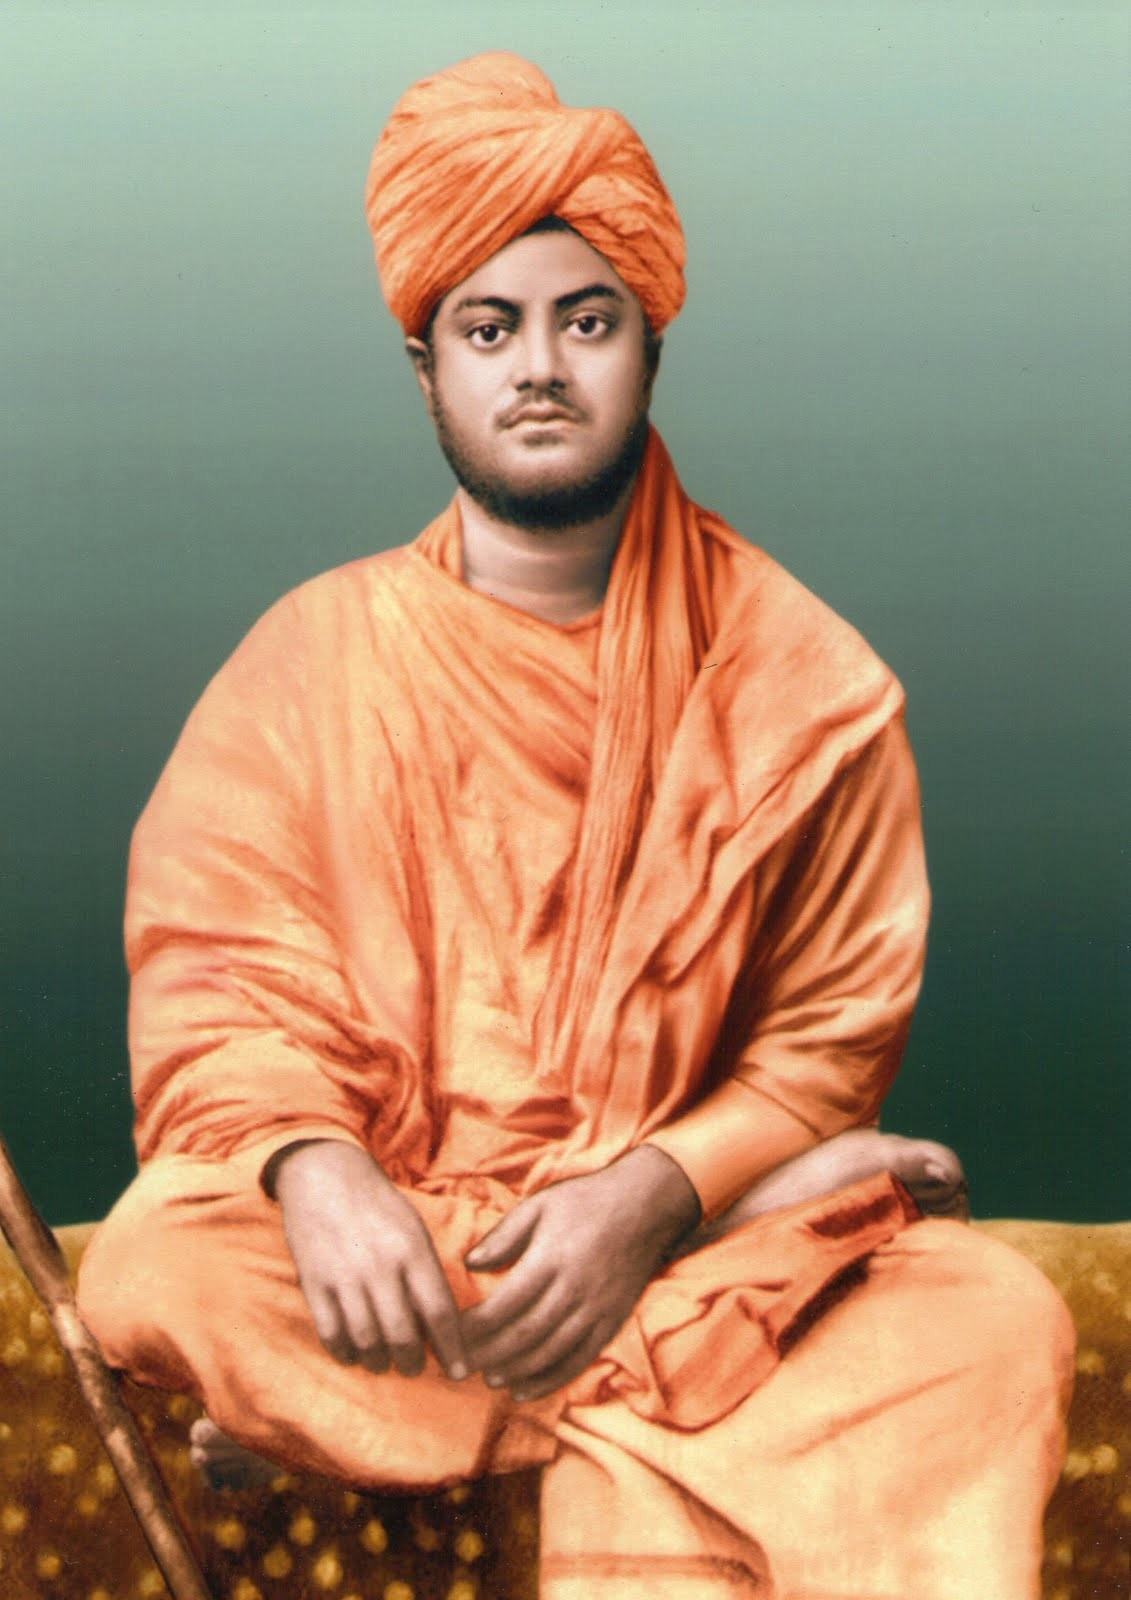 Download Wallpapers Of Good Quotes Swami Vivekananda High Resolution Best Size Hd Wallpapers